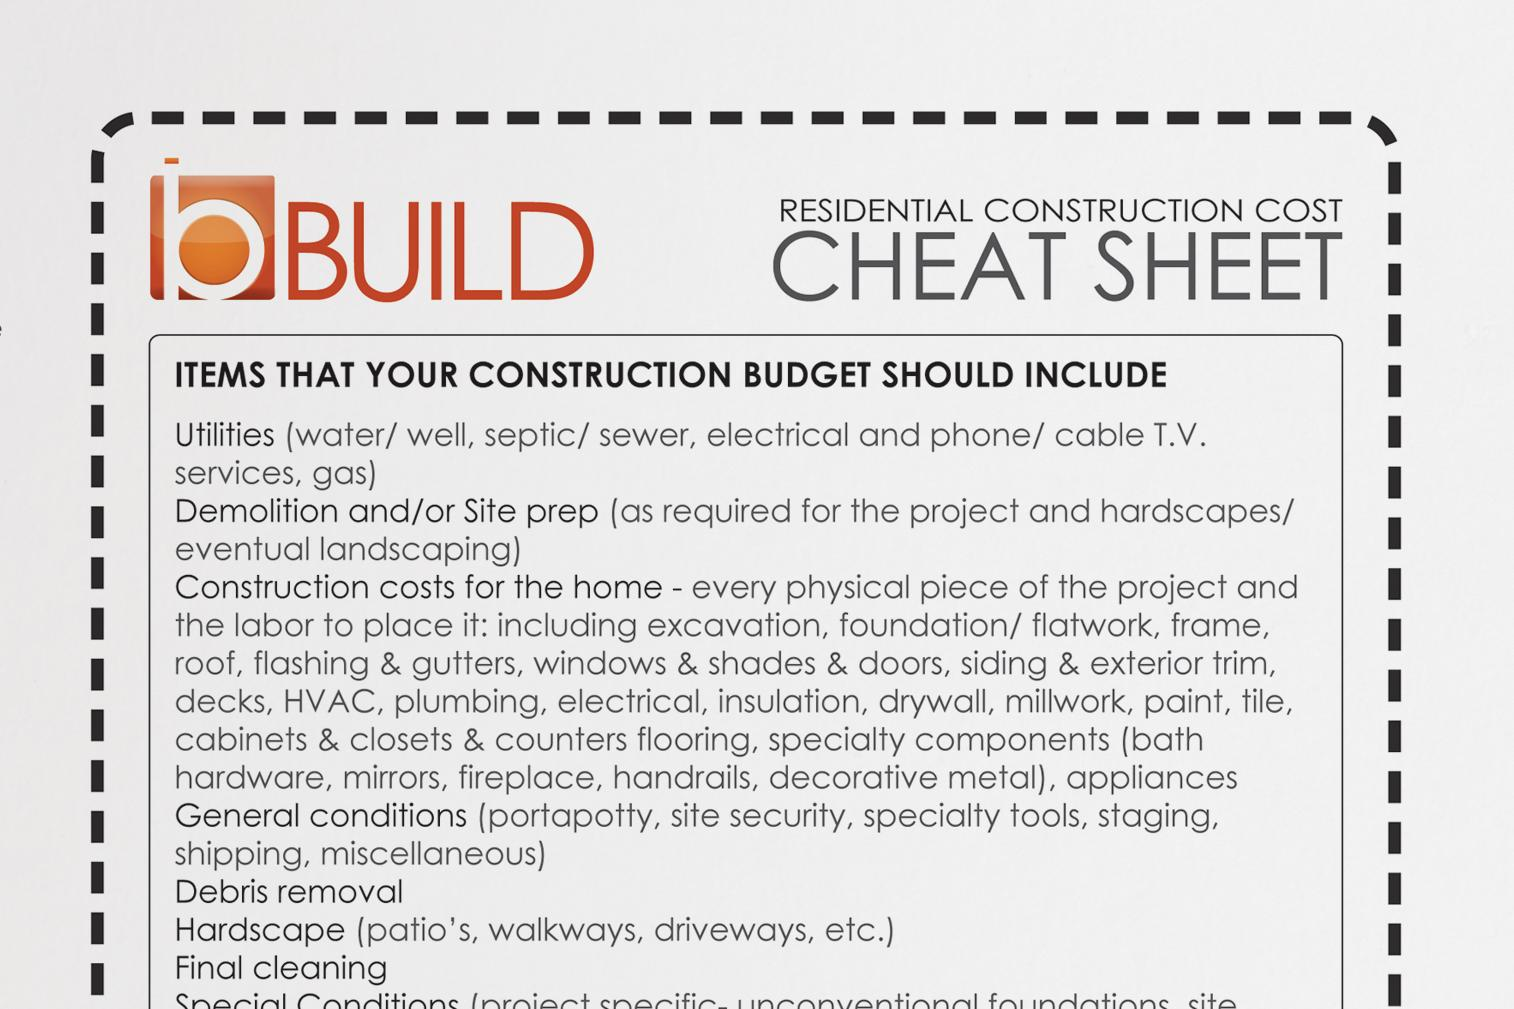 Get Real Construction Cost Cheat Sheet For Clients